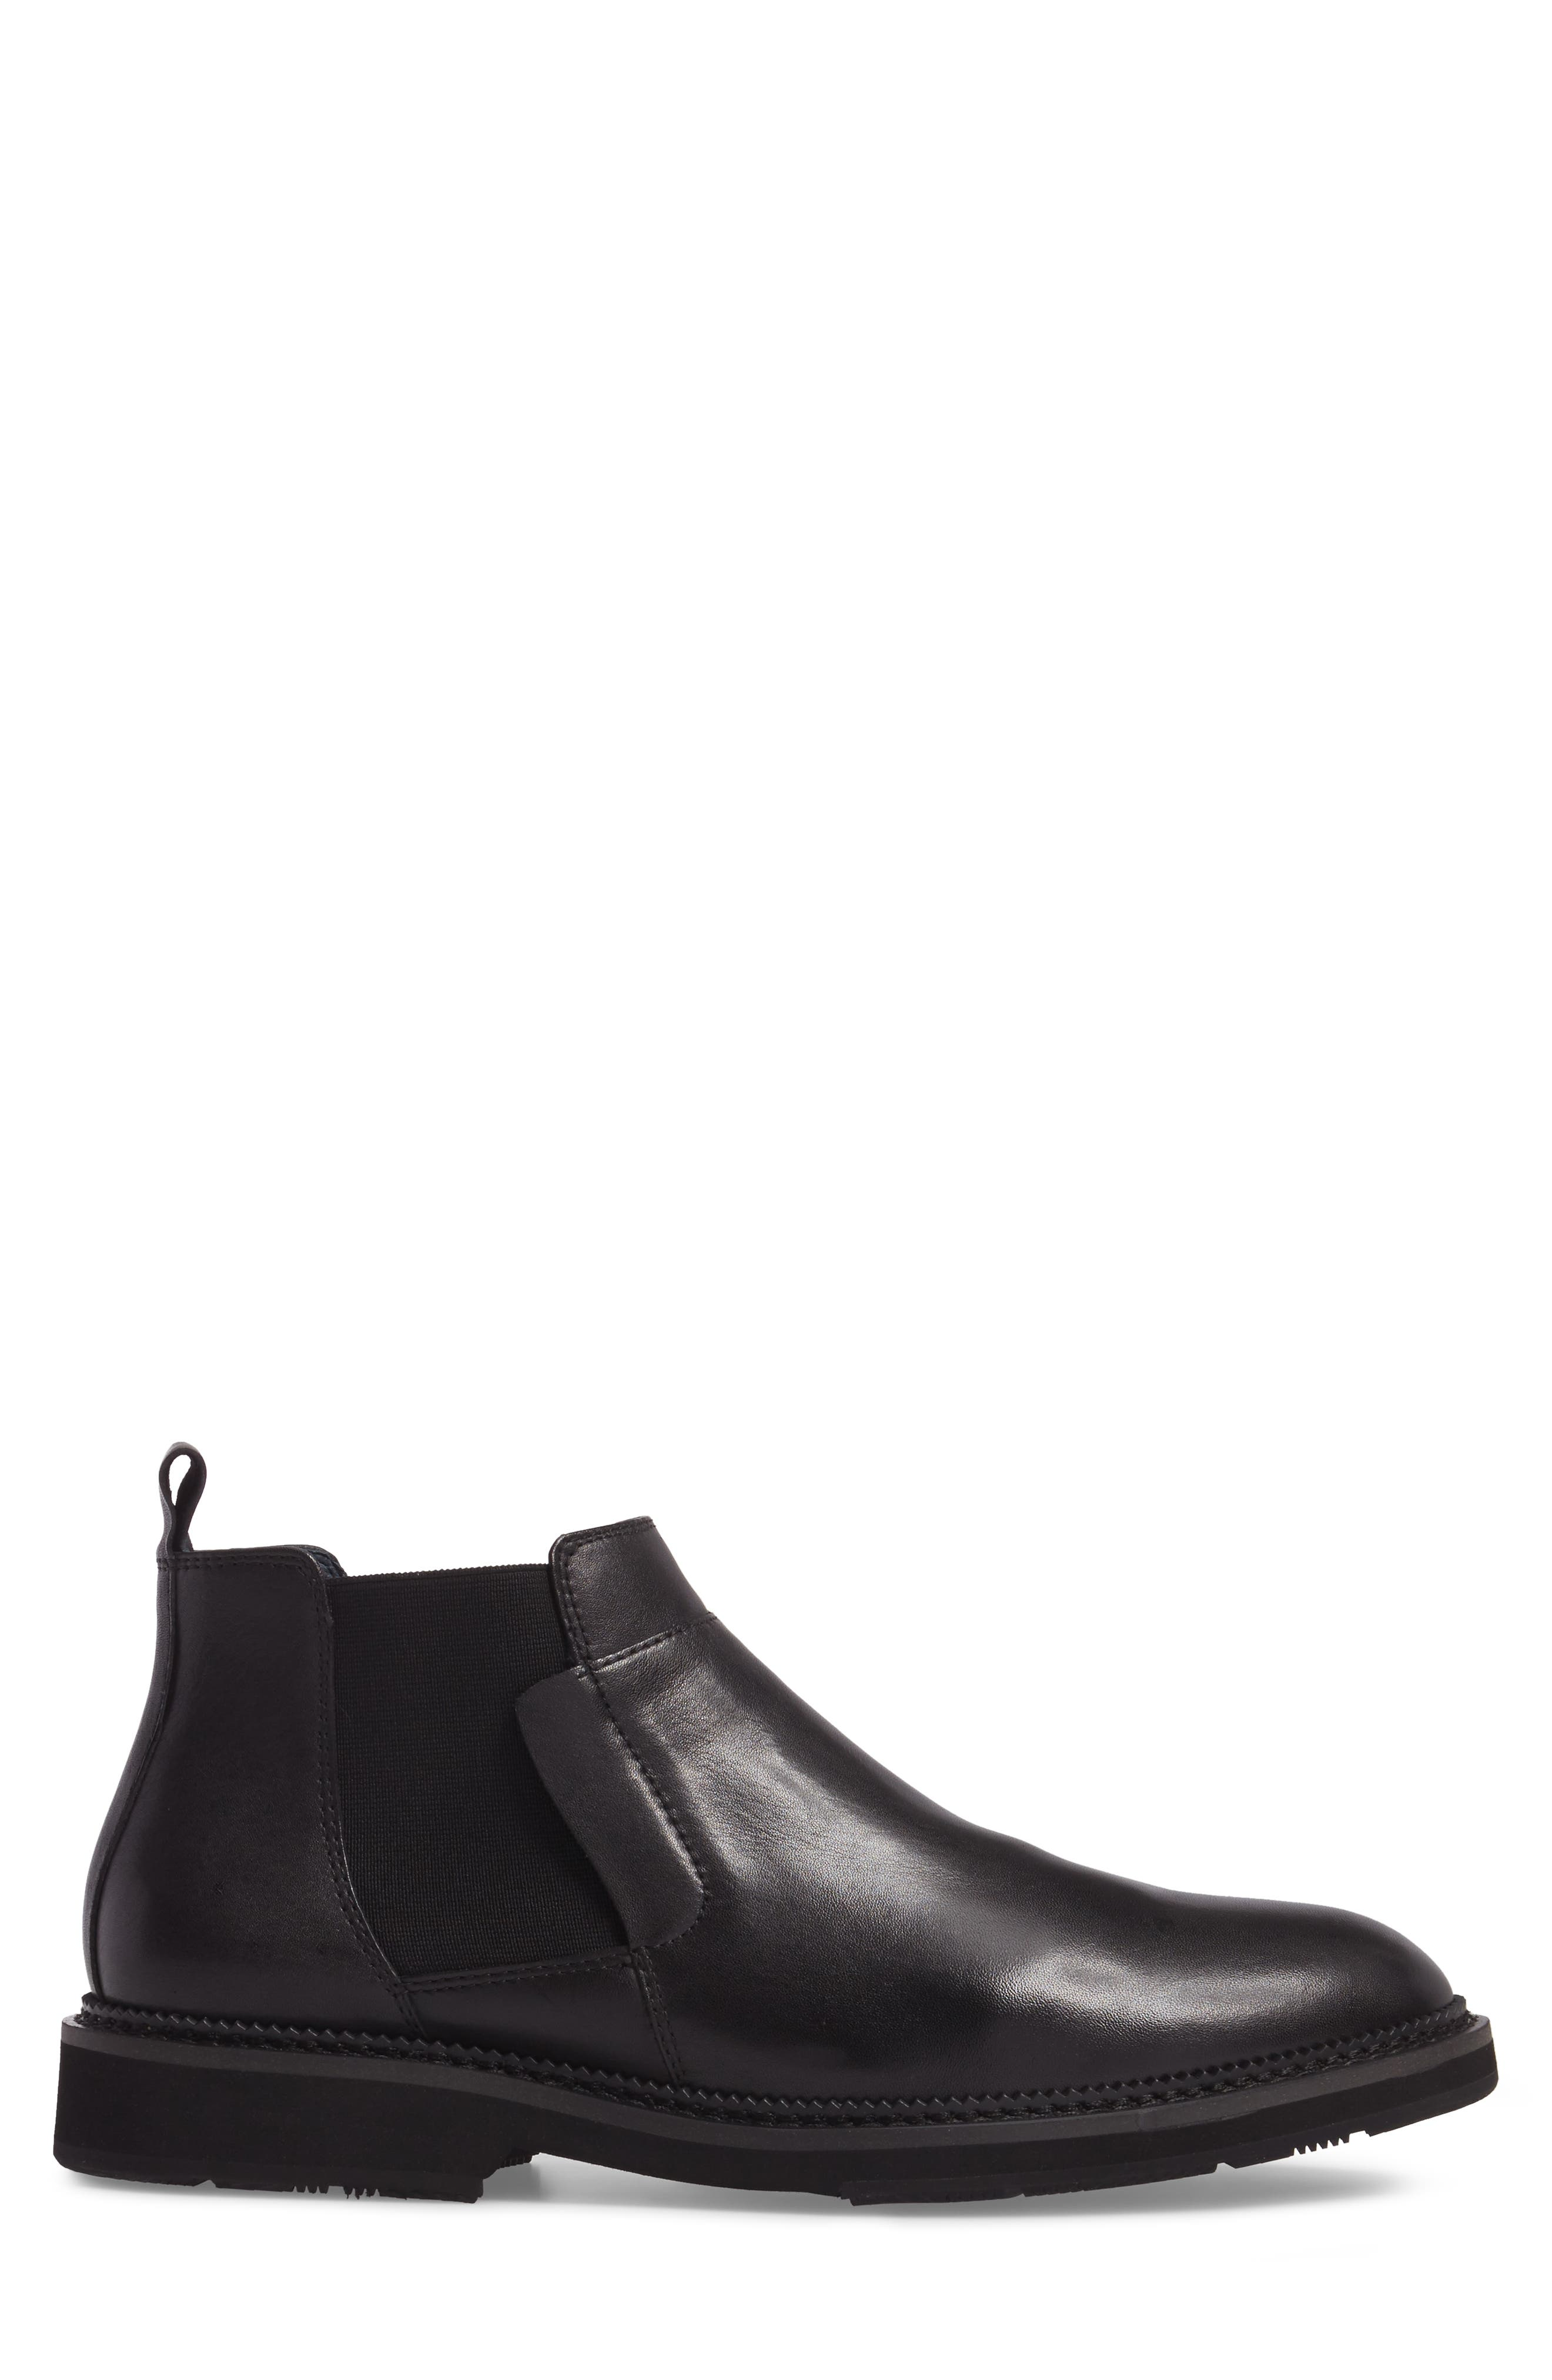 ZANZARA,                             Garrad Chelsea Boot,                             Alternate thumbnail 3, color,                             001